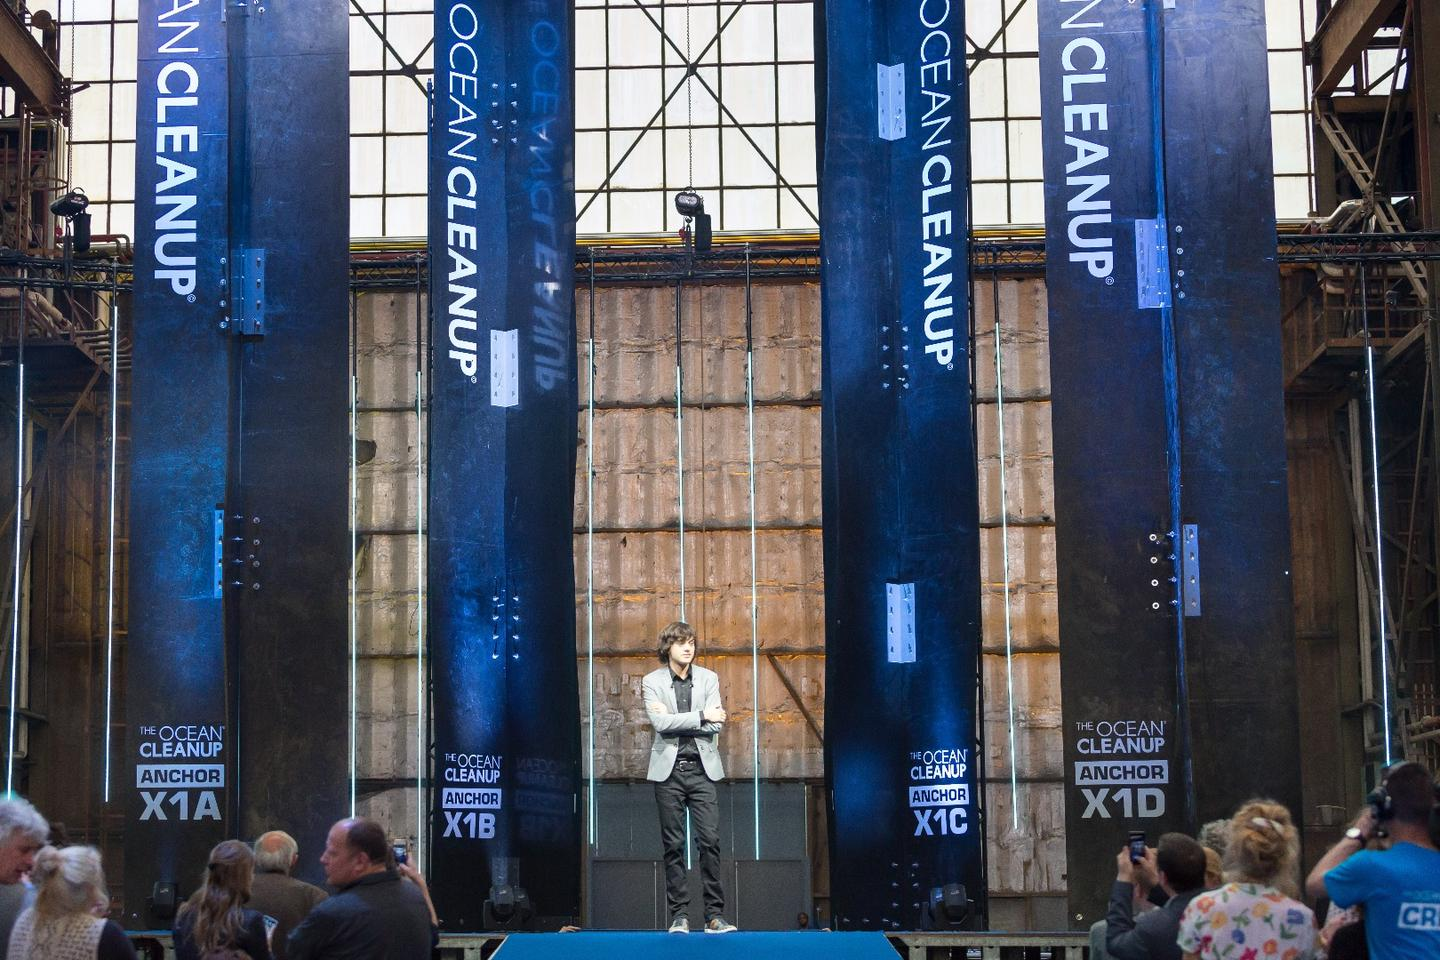 Boyan Slat's 'Next Phase' announcement for his Ocean Cleanup project revealed a new design and a deployment set for 2018, two years ahead of schedule